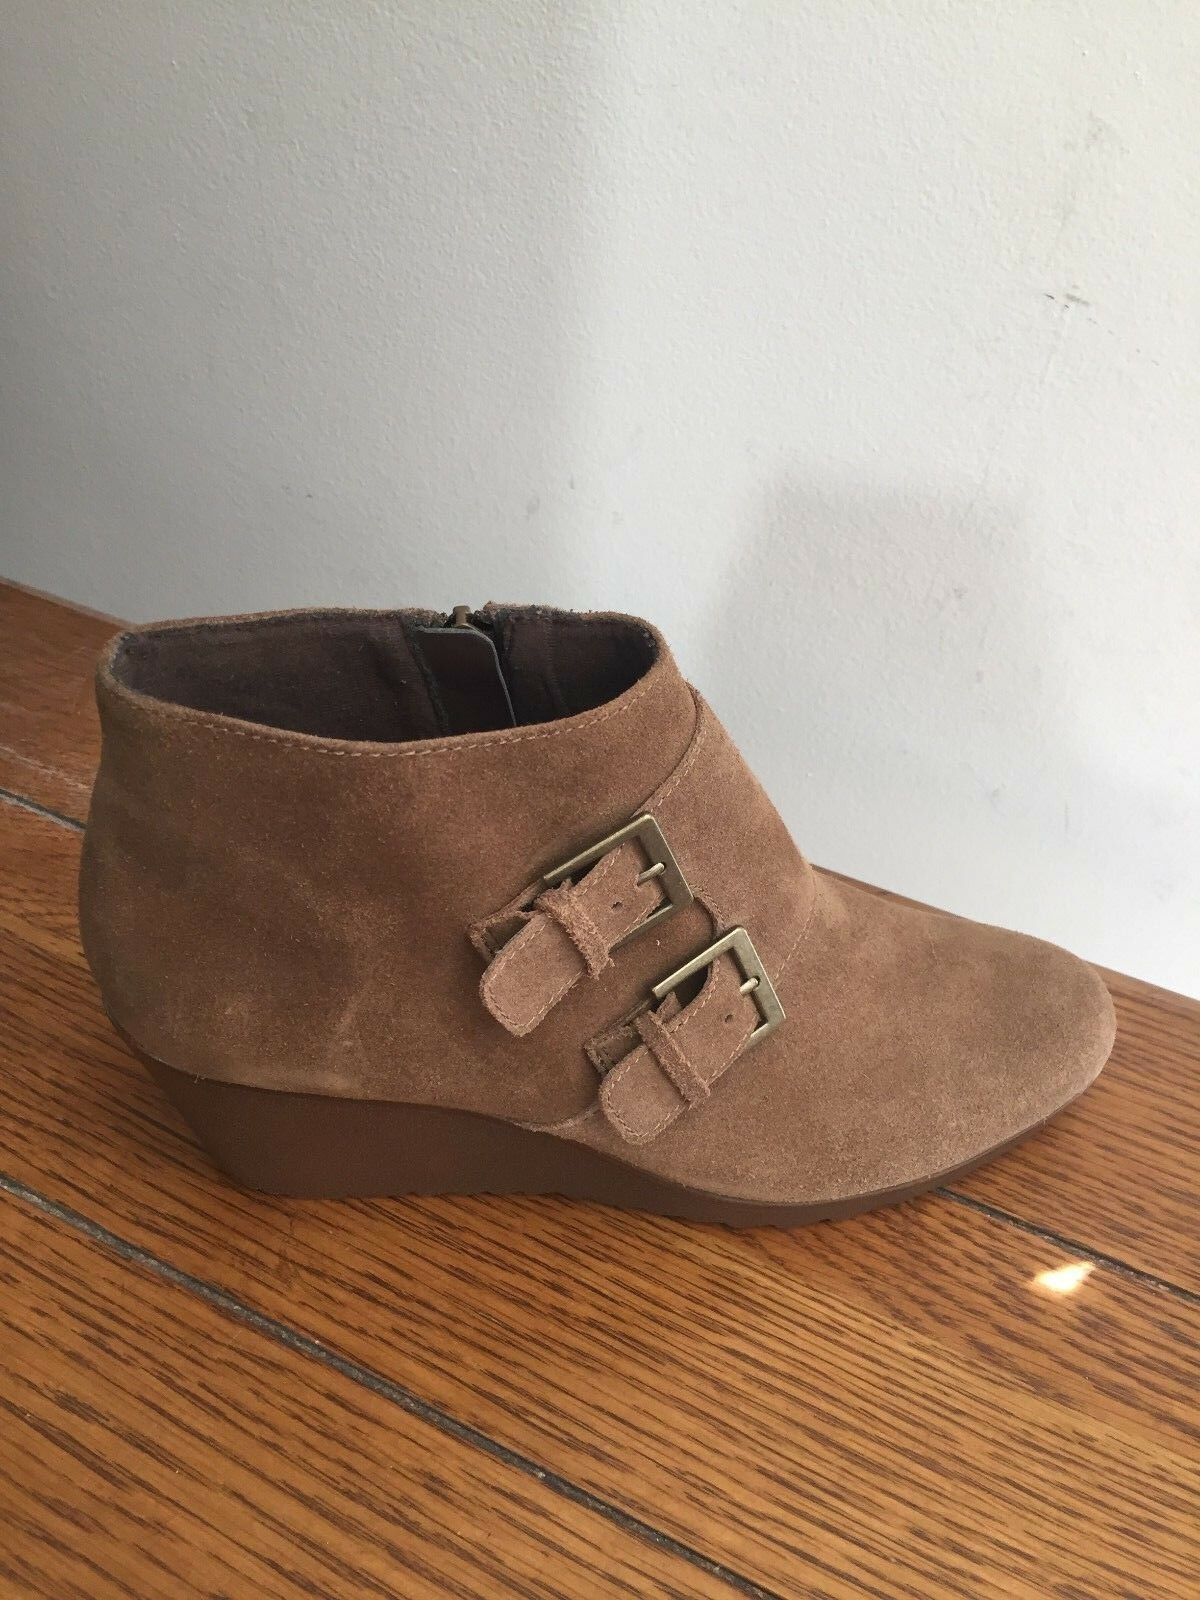 NEW Munro Drew Size 8.5 N Brown Suede Leather Ankle Boots Wedges Water Resistant